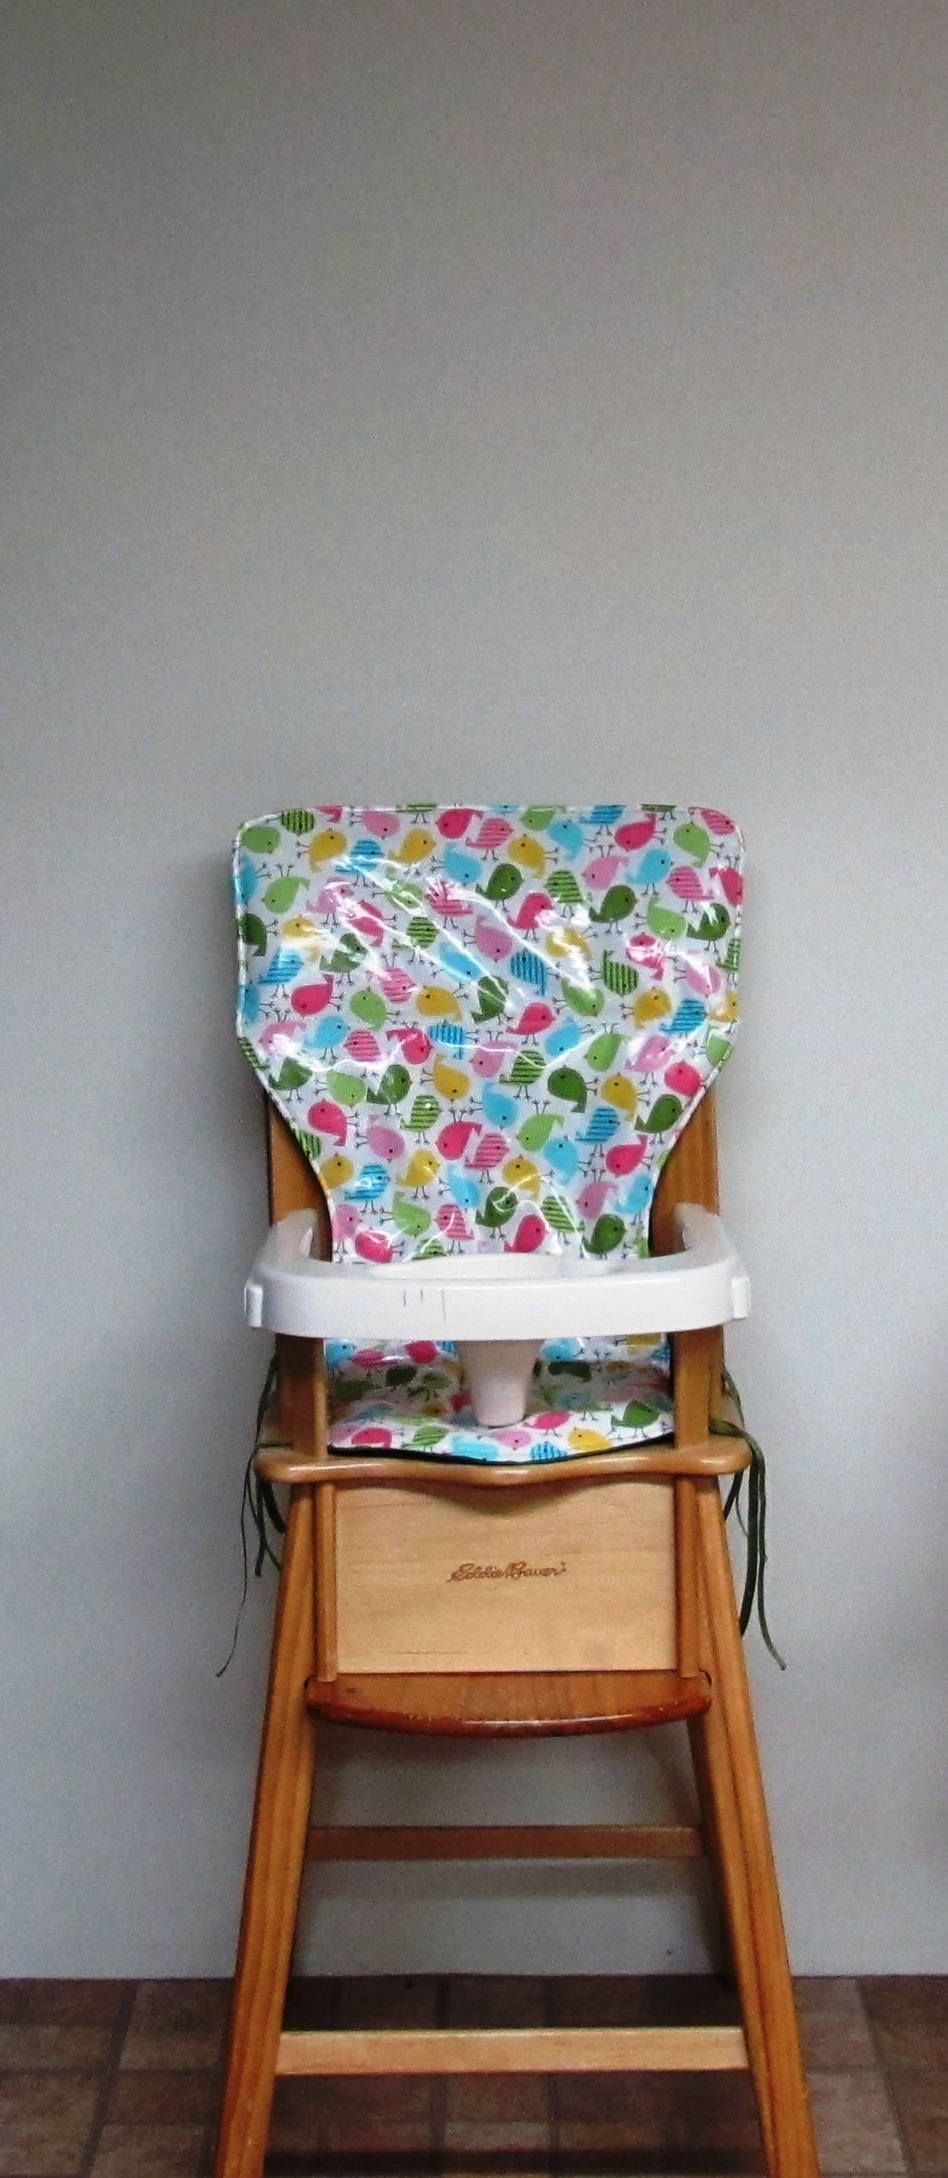 Astonishing Baby Chair Cover Laminated Cotton Wood High Chair Pad Baby Ocoug Best Dining Table And Chair Ideas Images Ocougorg